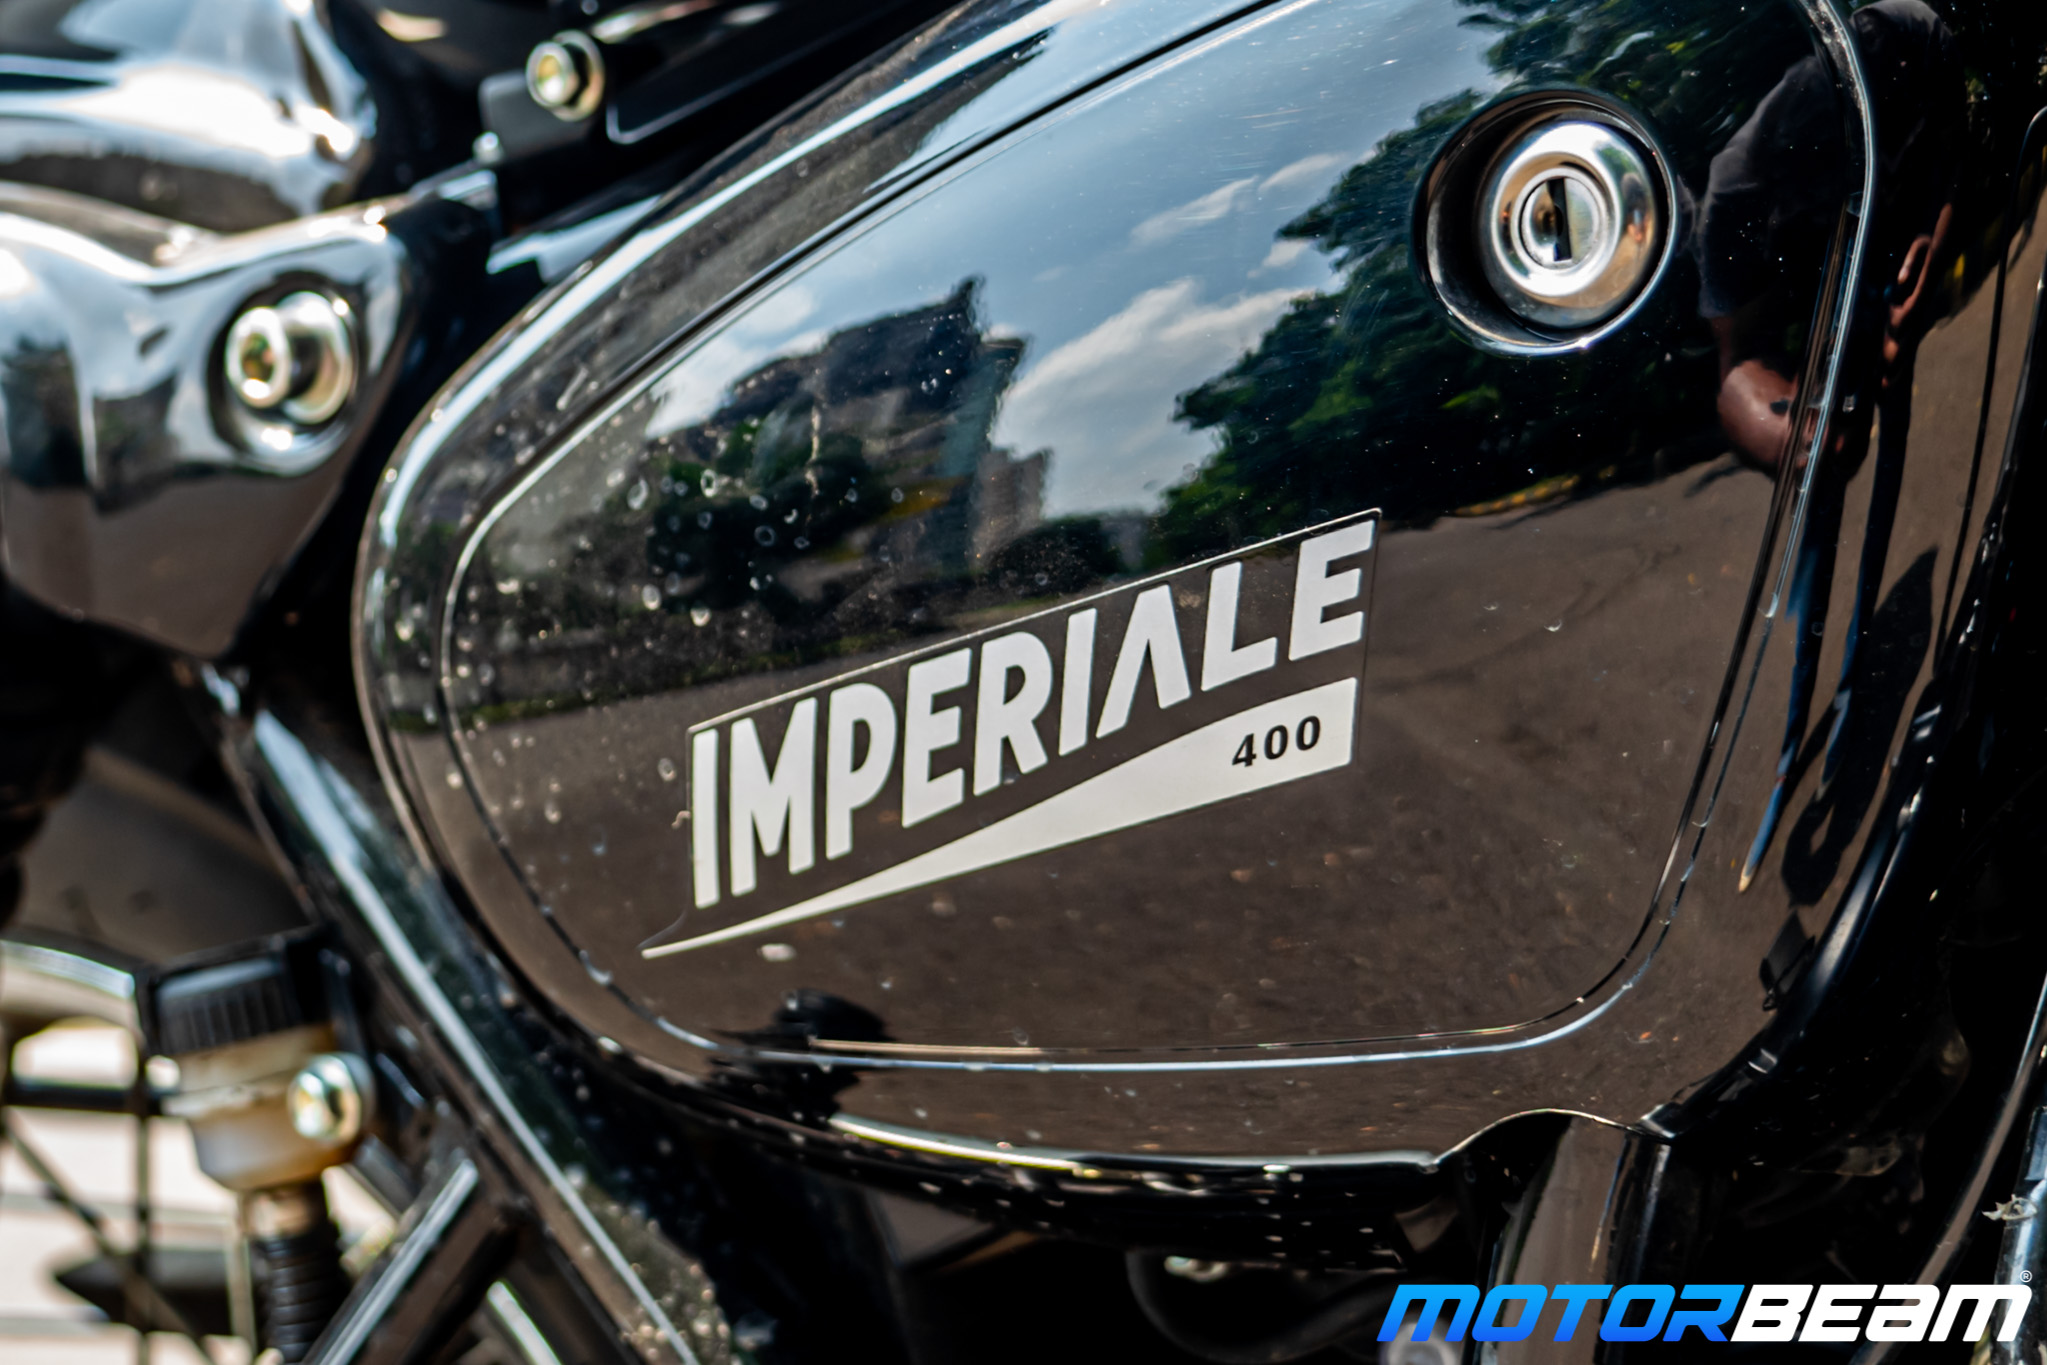 2020 Benelli Imperiale 400 Review 30